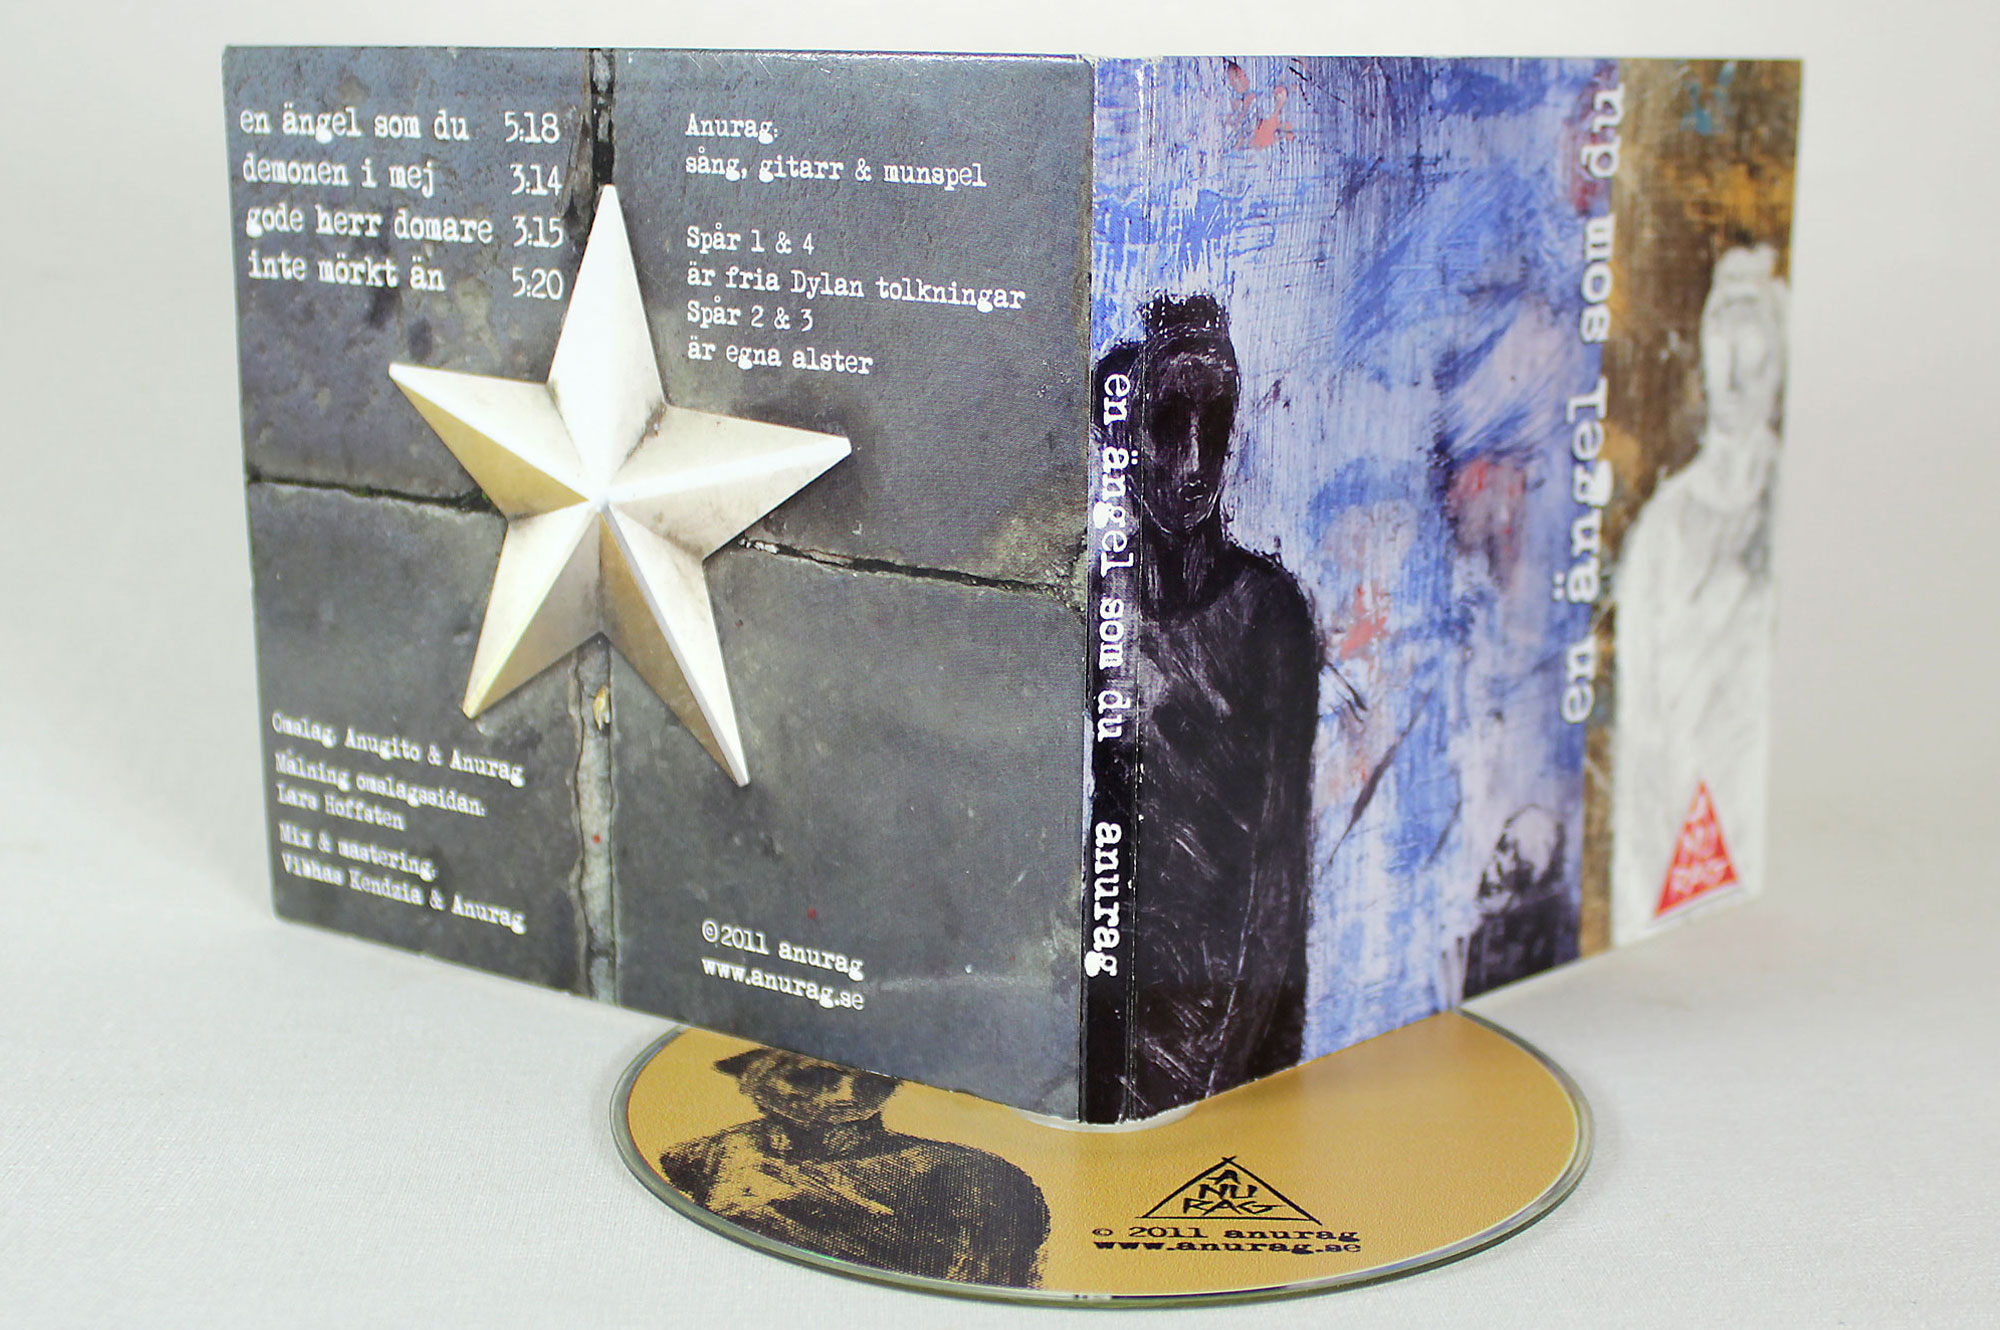 CD Jacket For Swedish Artist Anurag